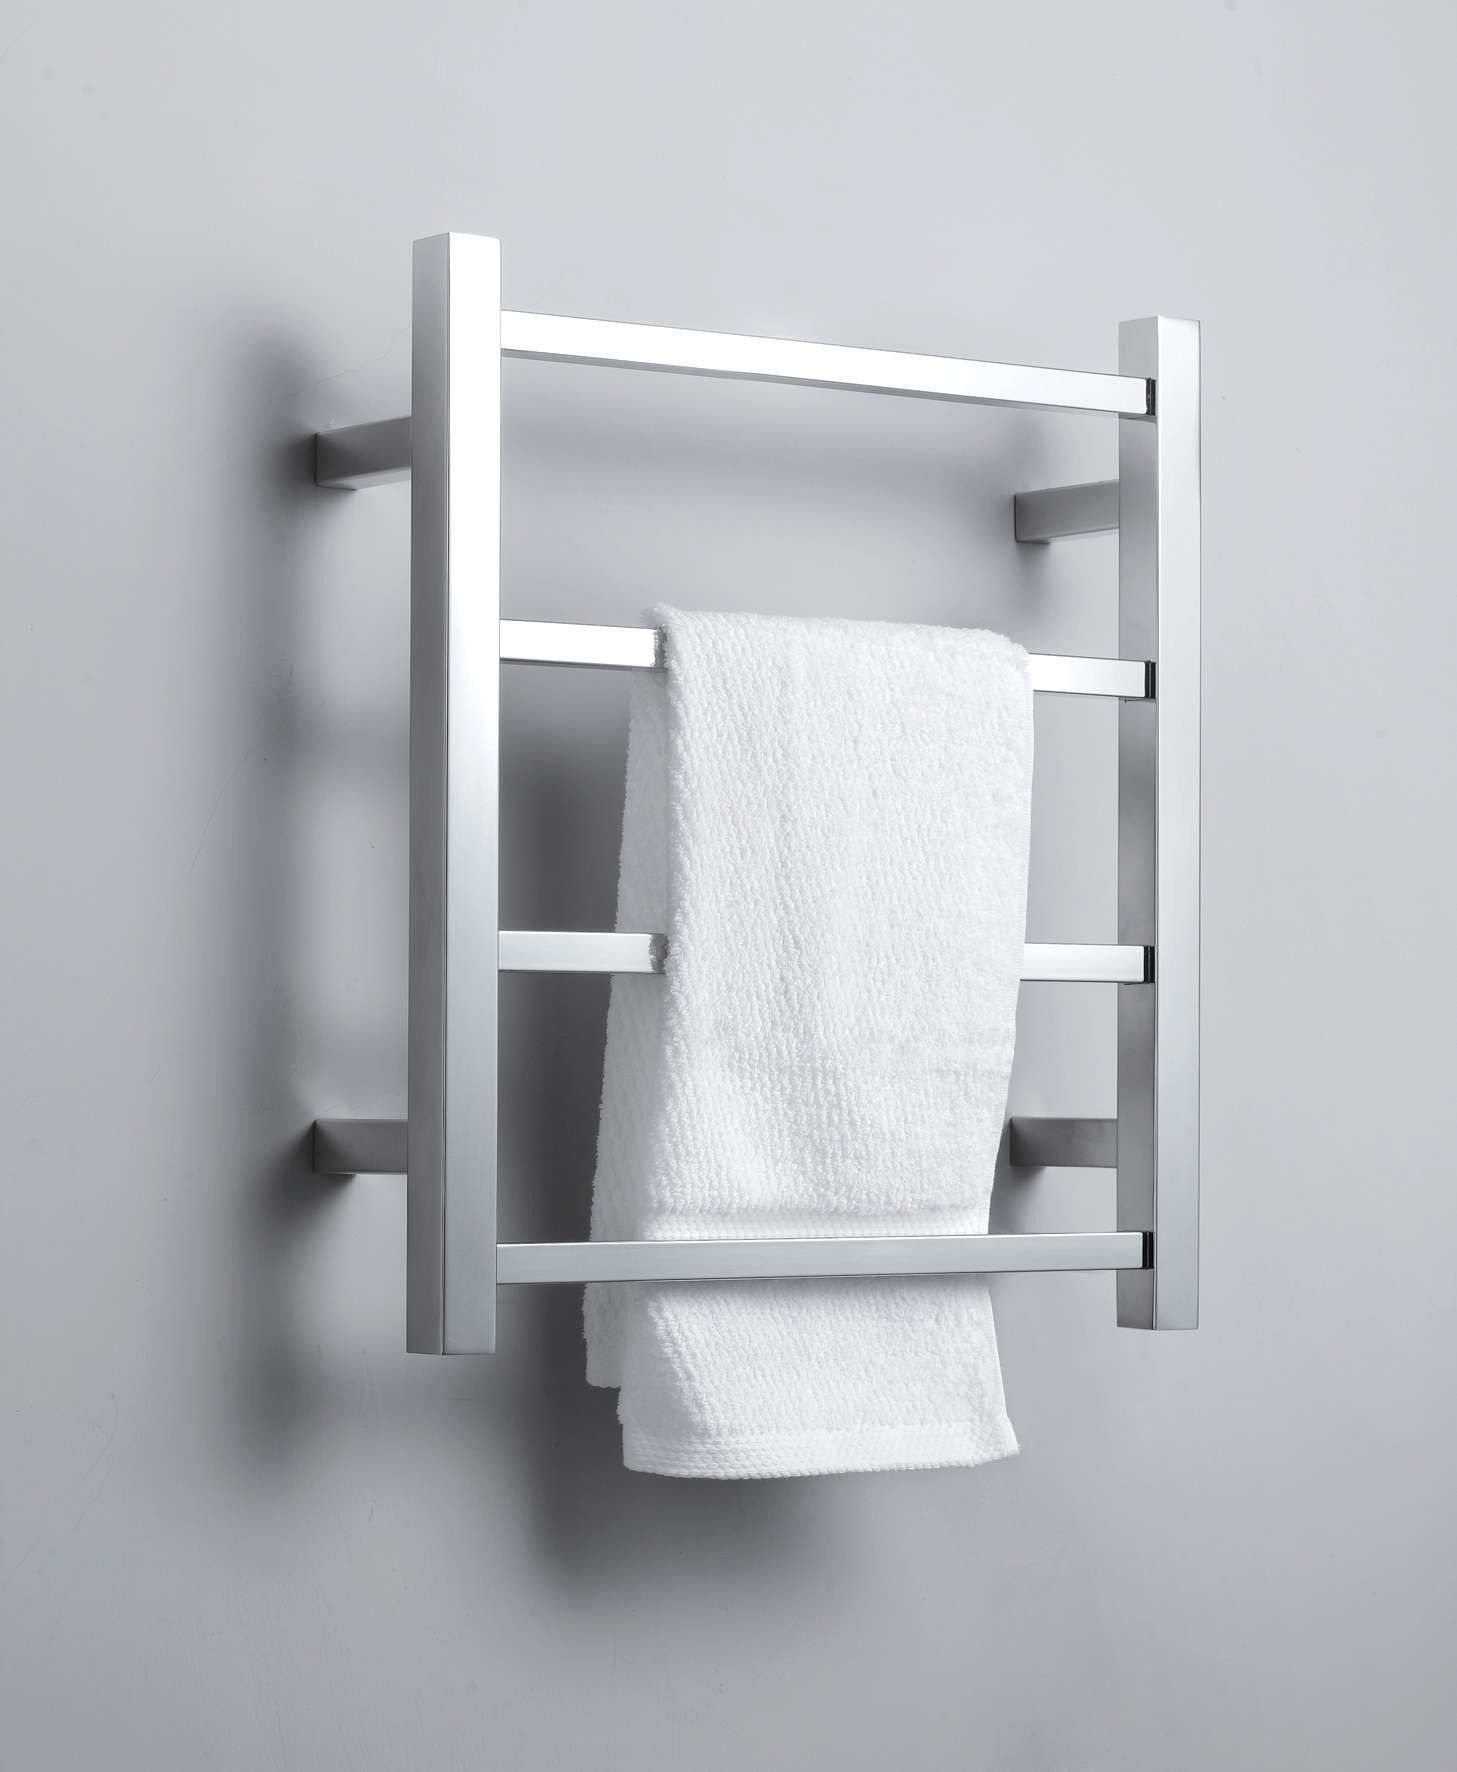 Koze Wall Mount Electric Towel Warmer Koze